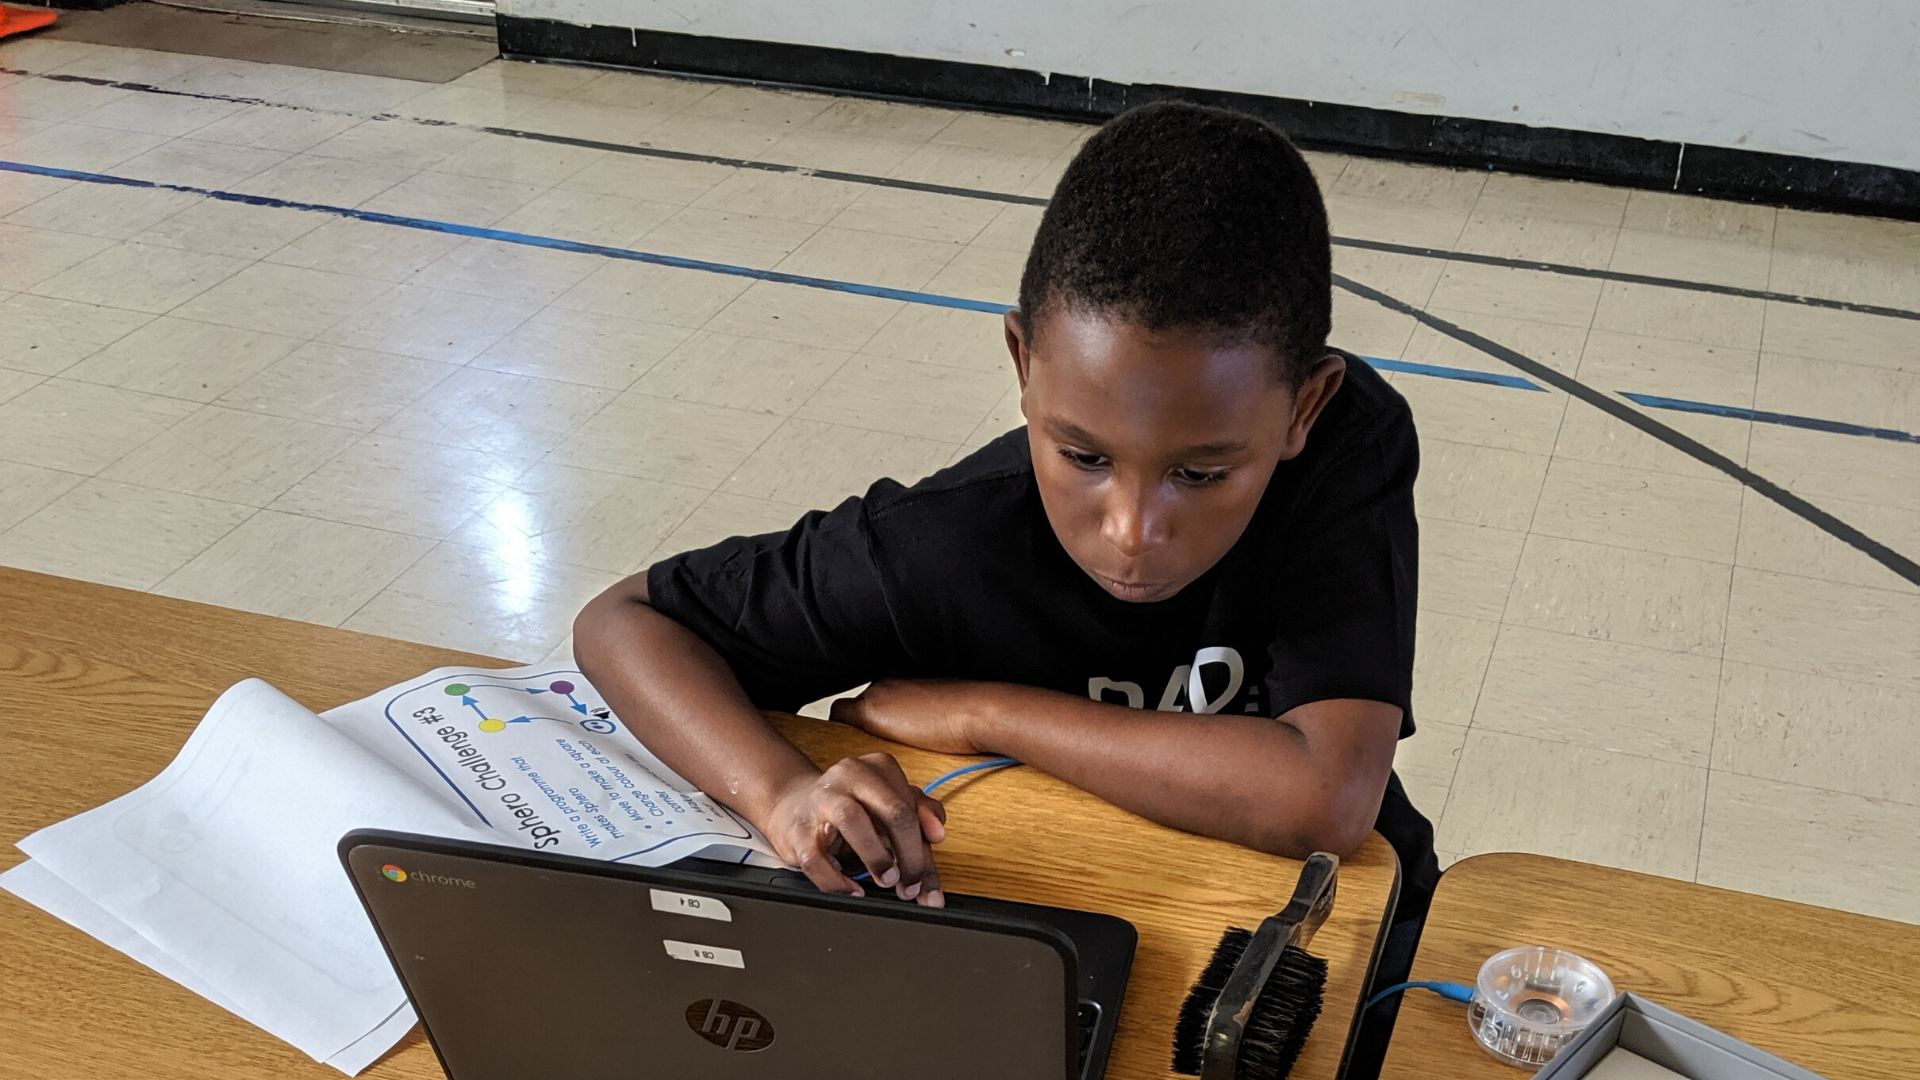 WBBM Newsradio, August 21, 2020: Nonprofit Works to Keep At-Risk CPS Students 'Logged In' to Remote Learning